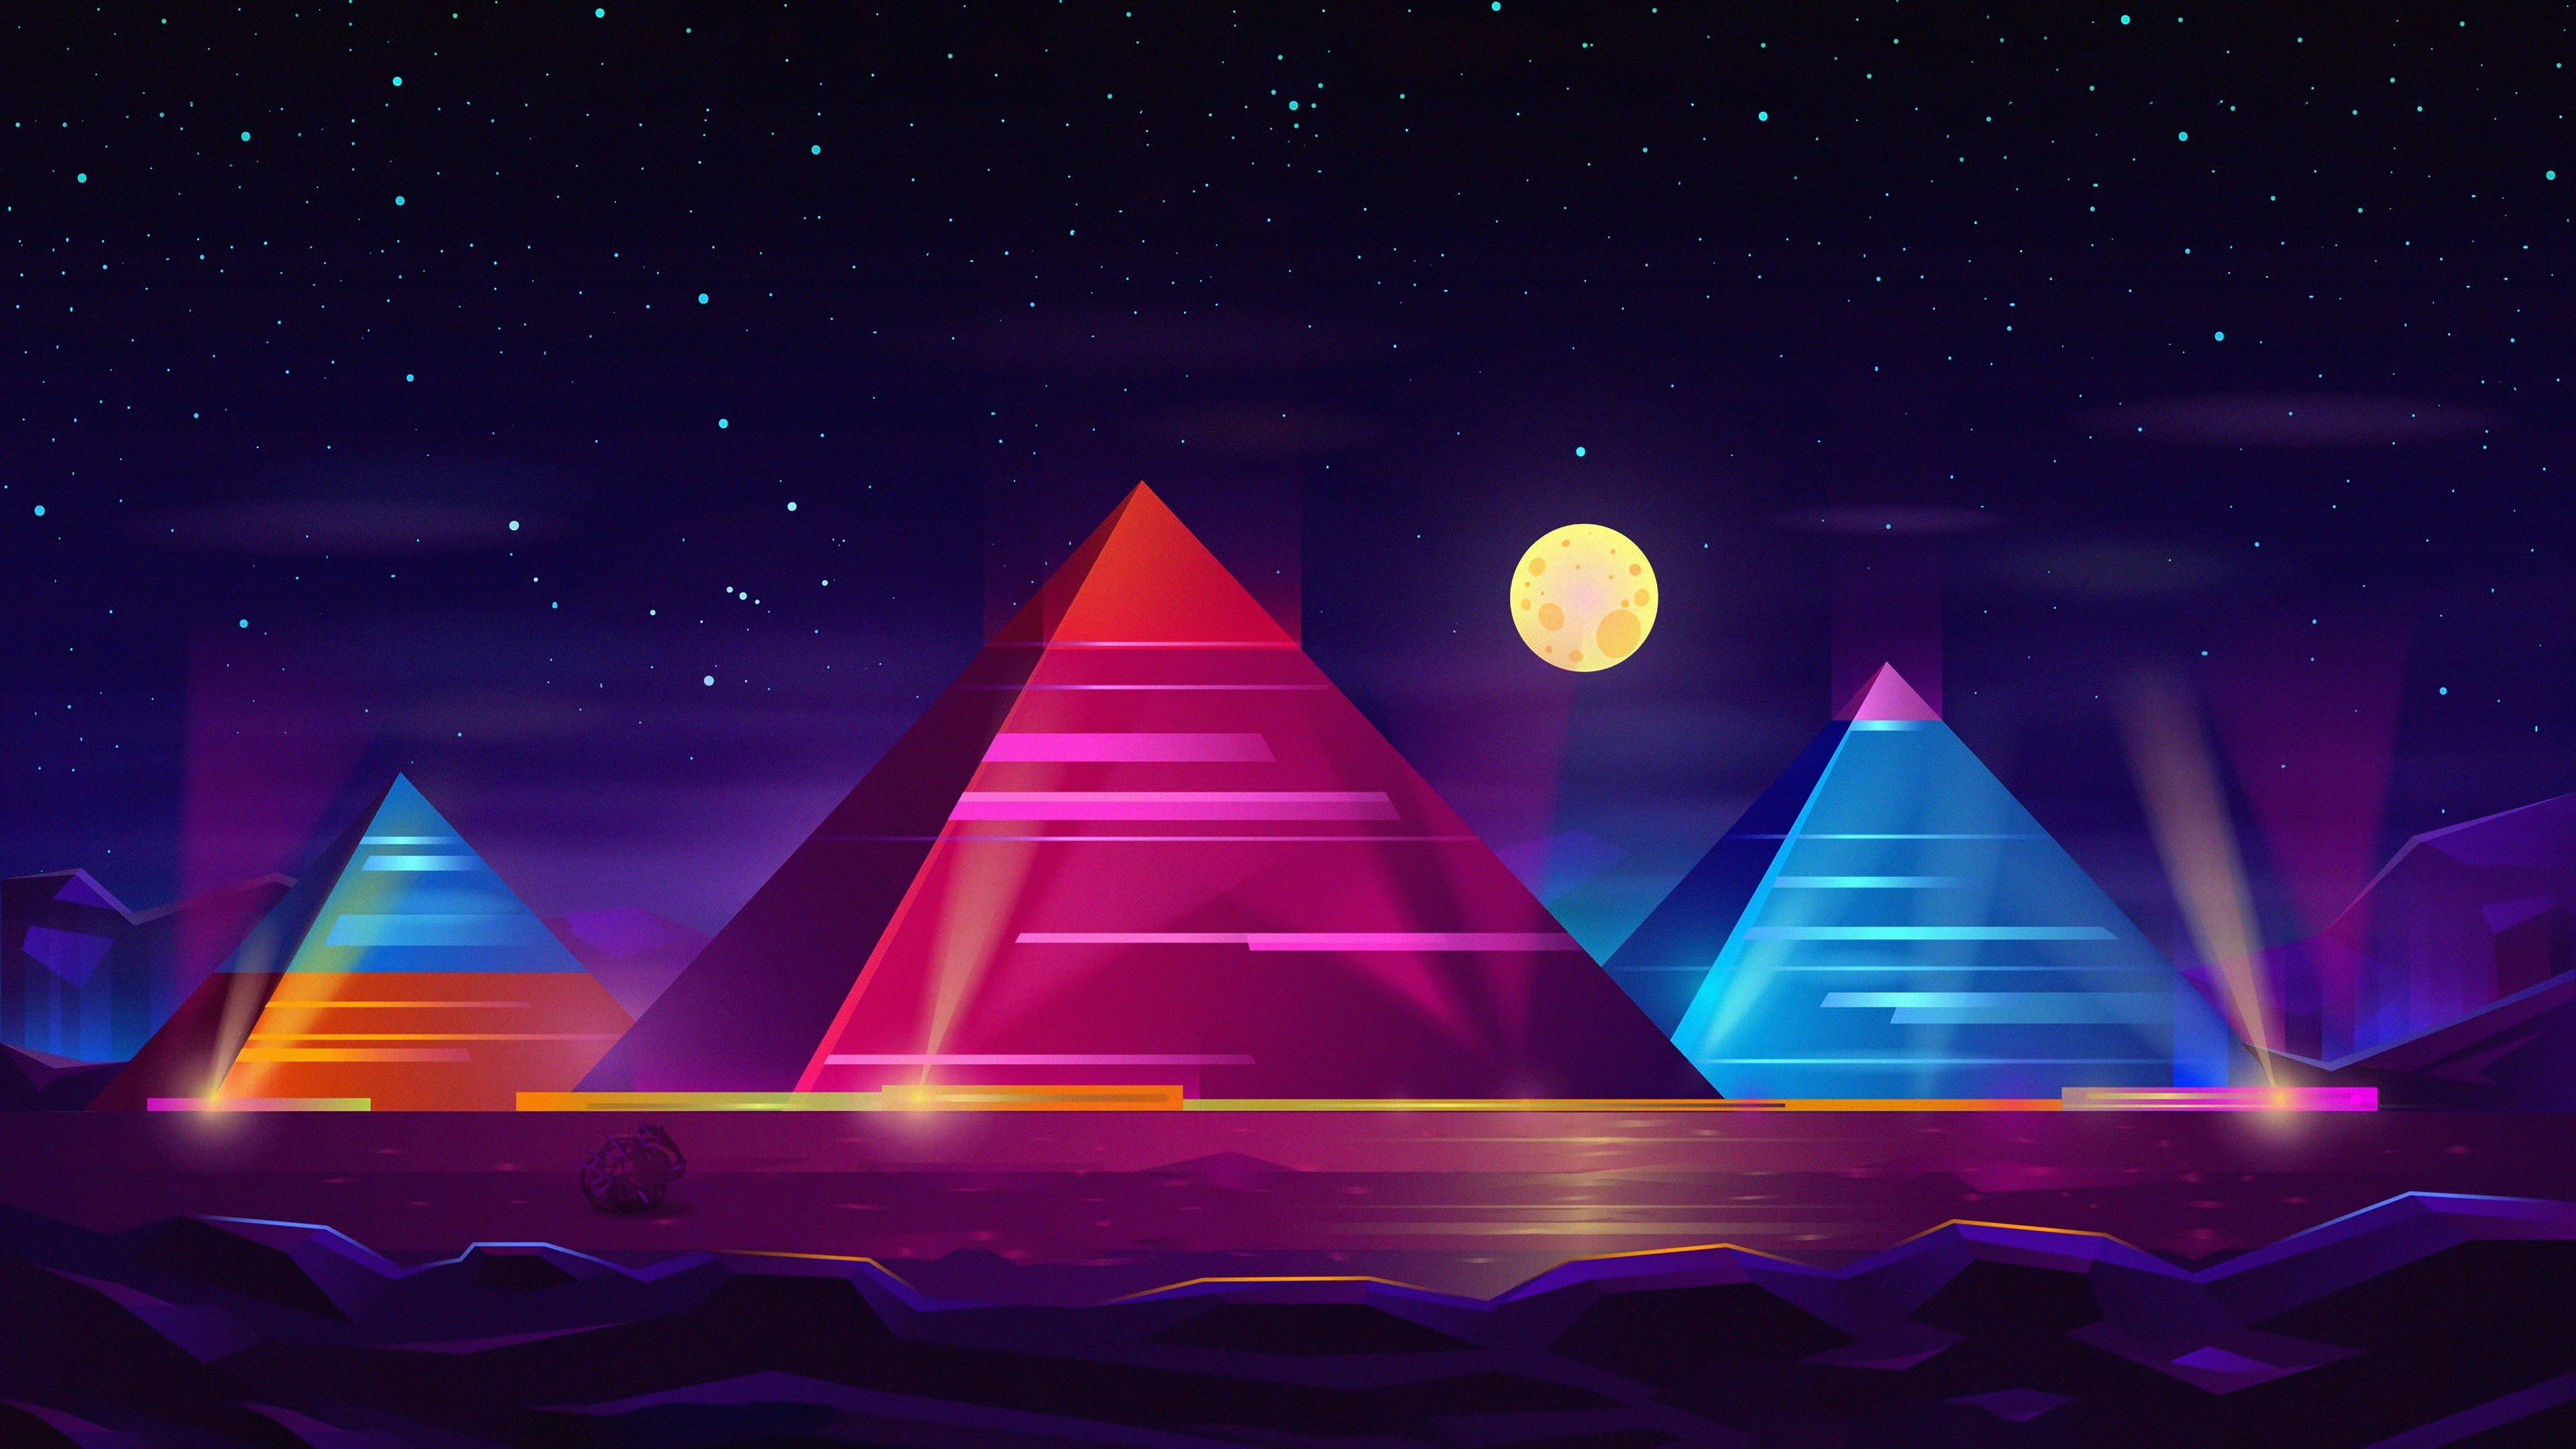 Pyramid Colorful Neon 4k Hd Artist 4k Wallpapers Images